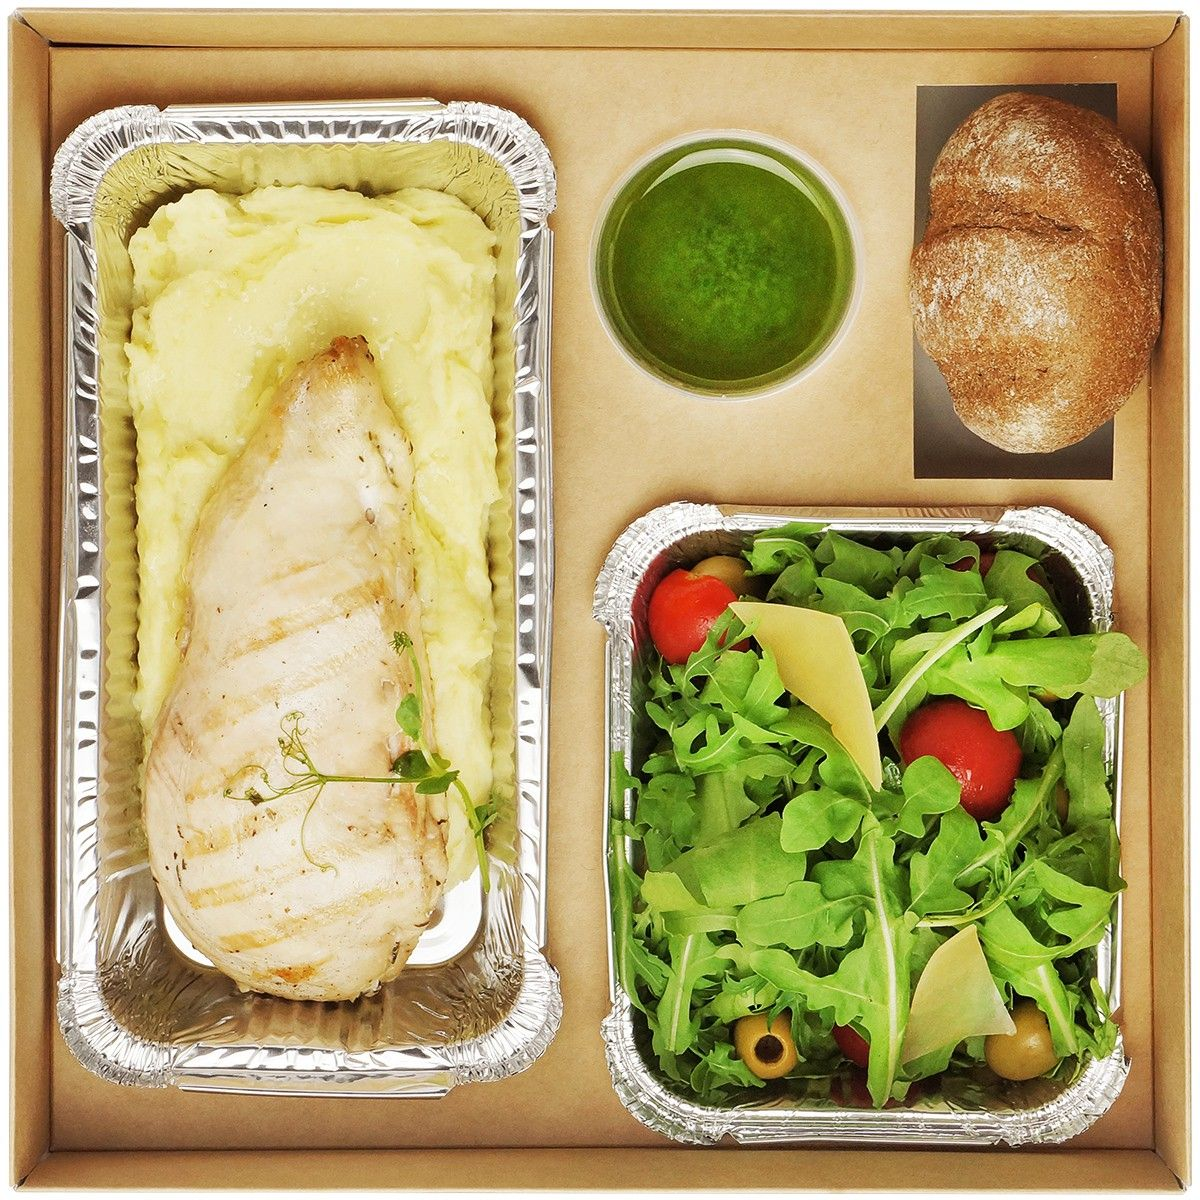 Chicken Lunch box №2: 400 грн. фото 4